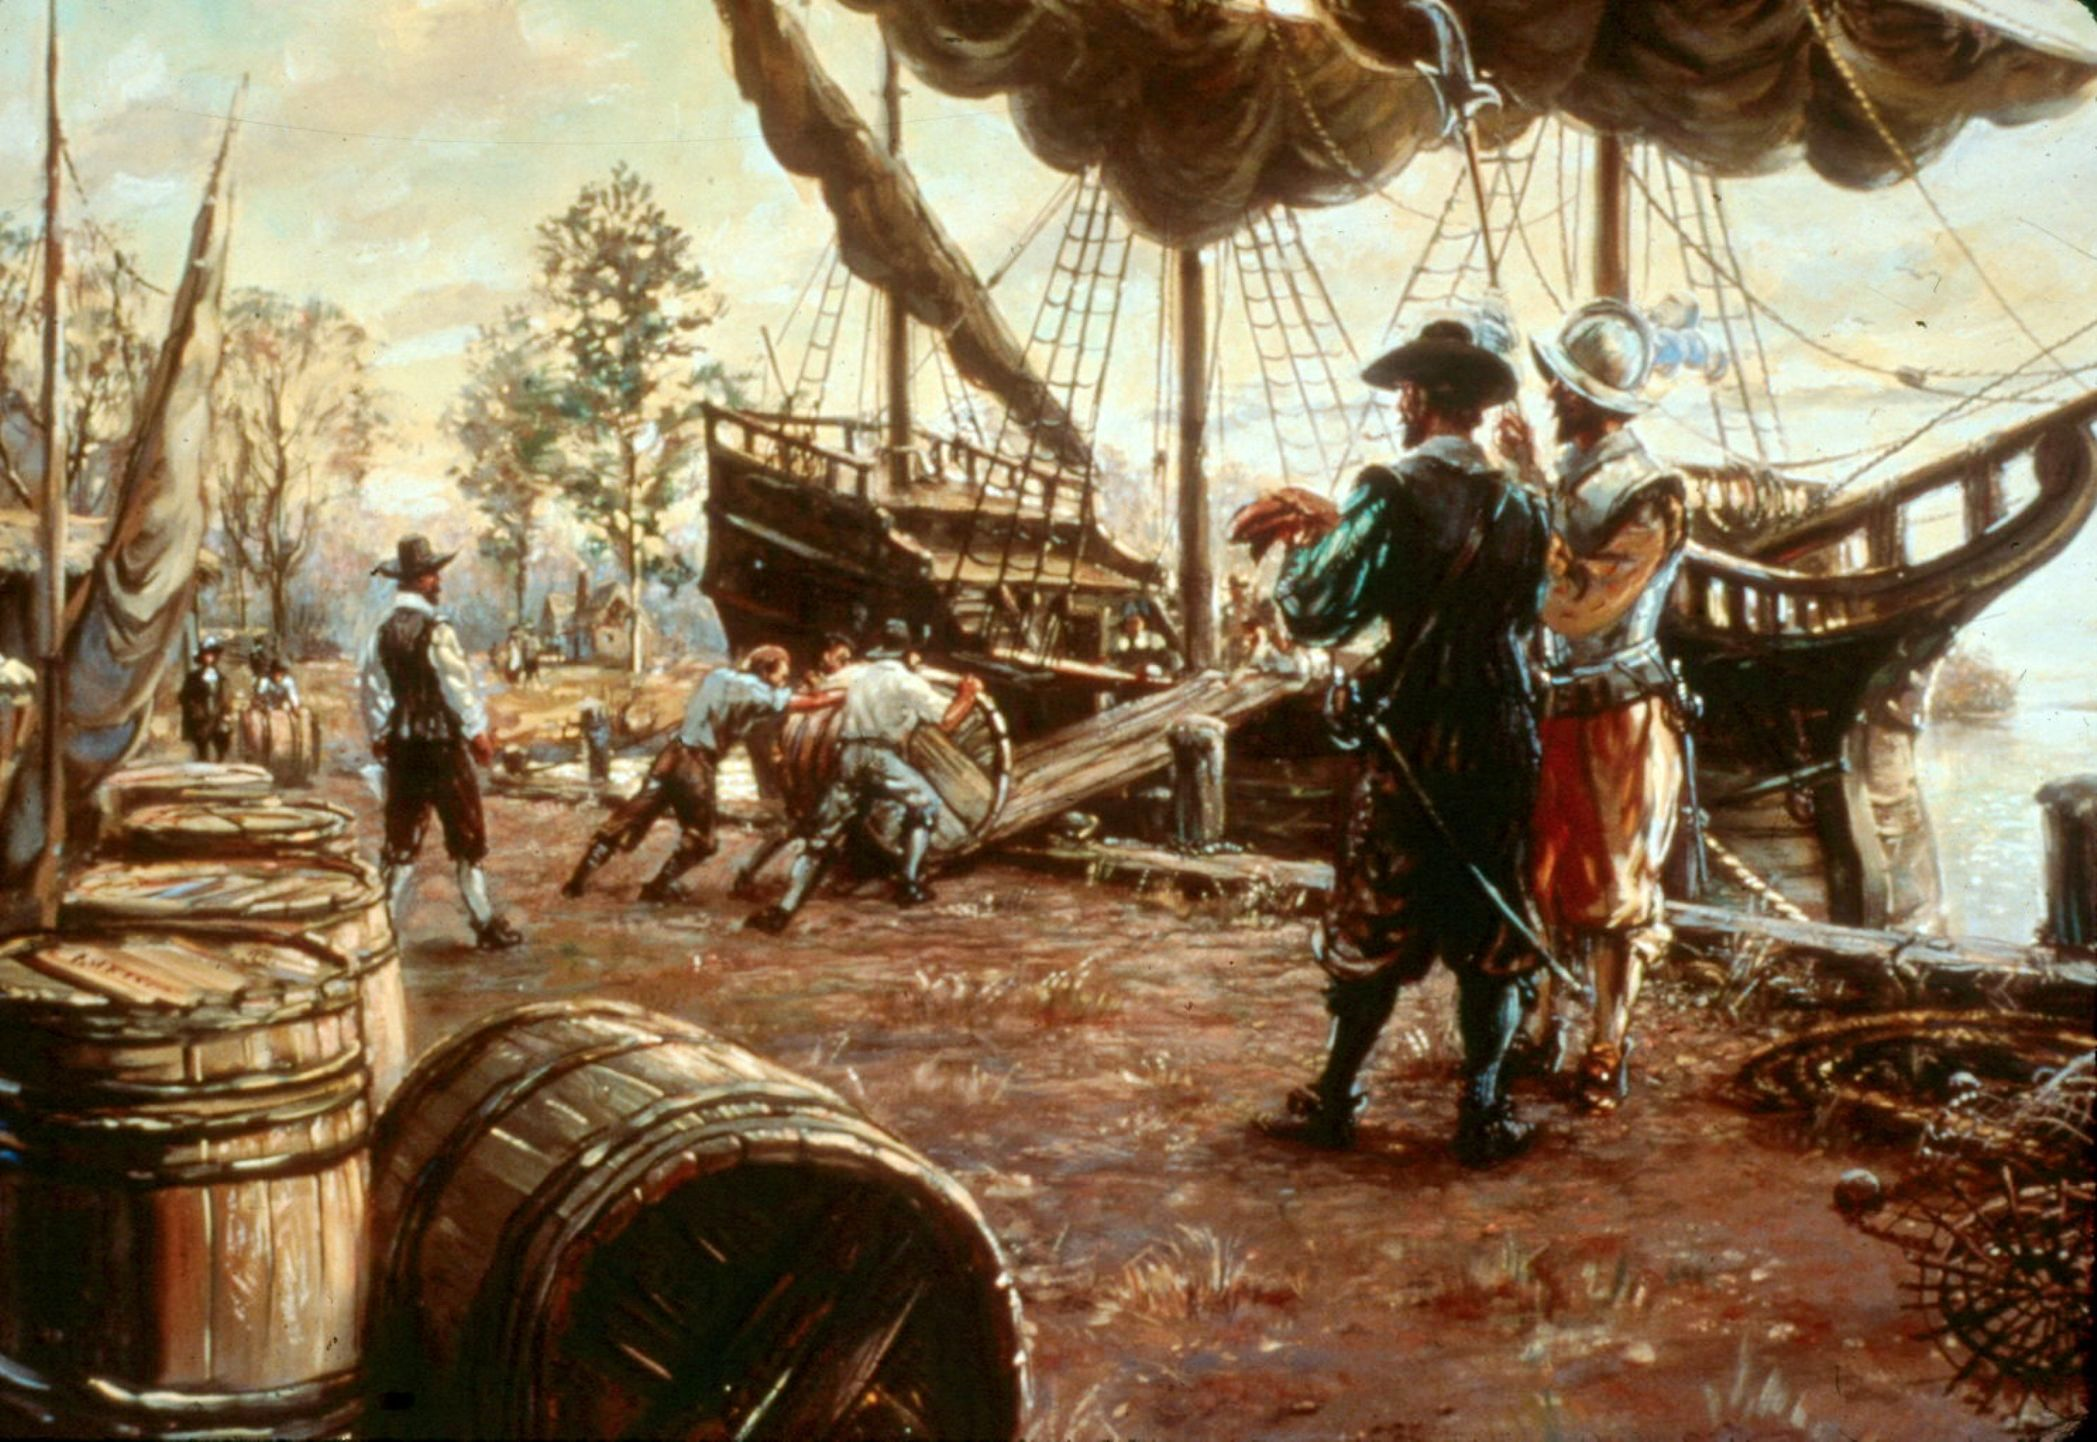 a history of the first english settlers in america The first pilgrims to reach america seeking religious freedom were english and settled in massachusetts right well, not so fast some fifty years before the mayflower left port, a band of french .